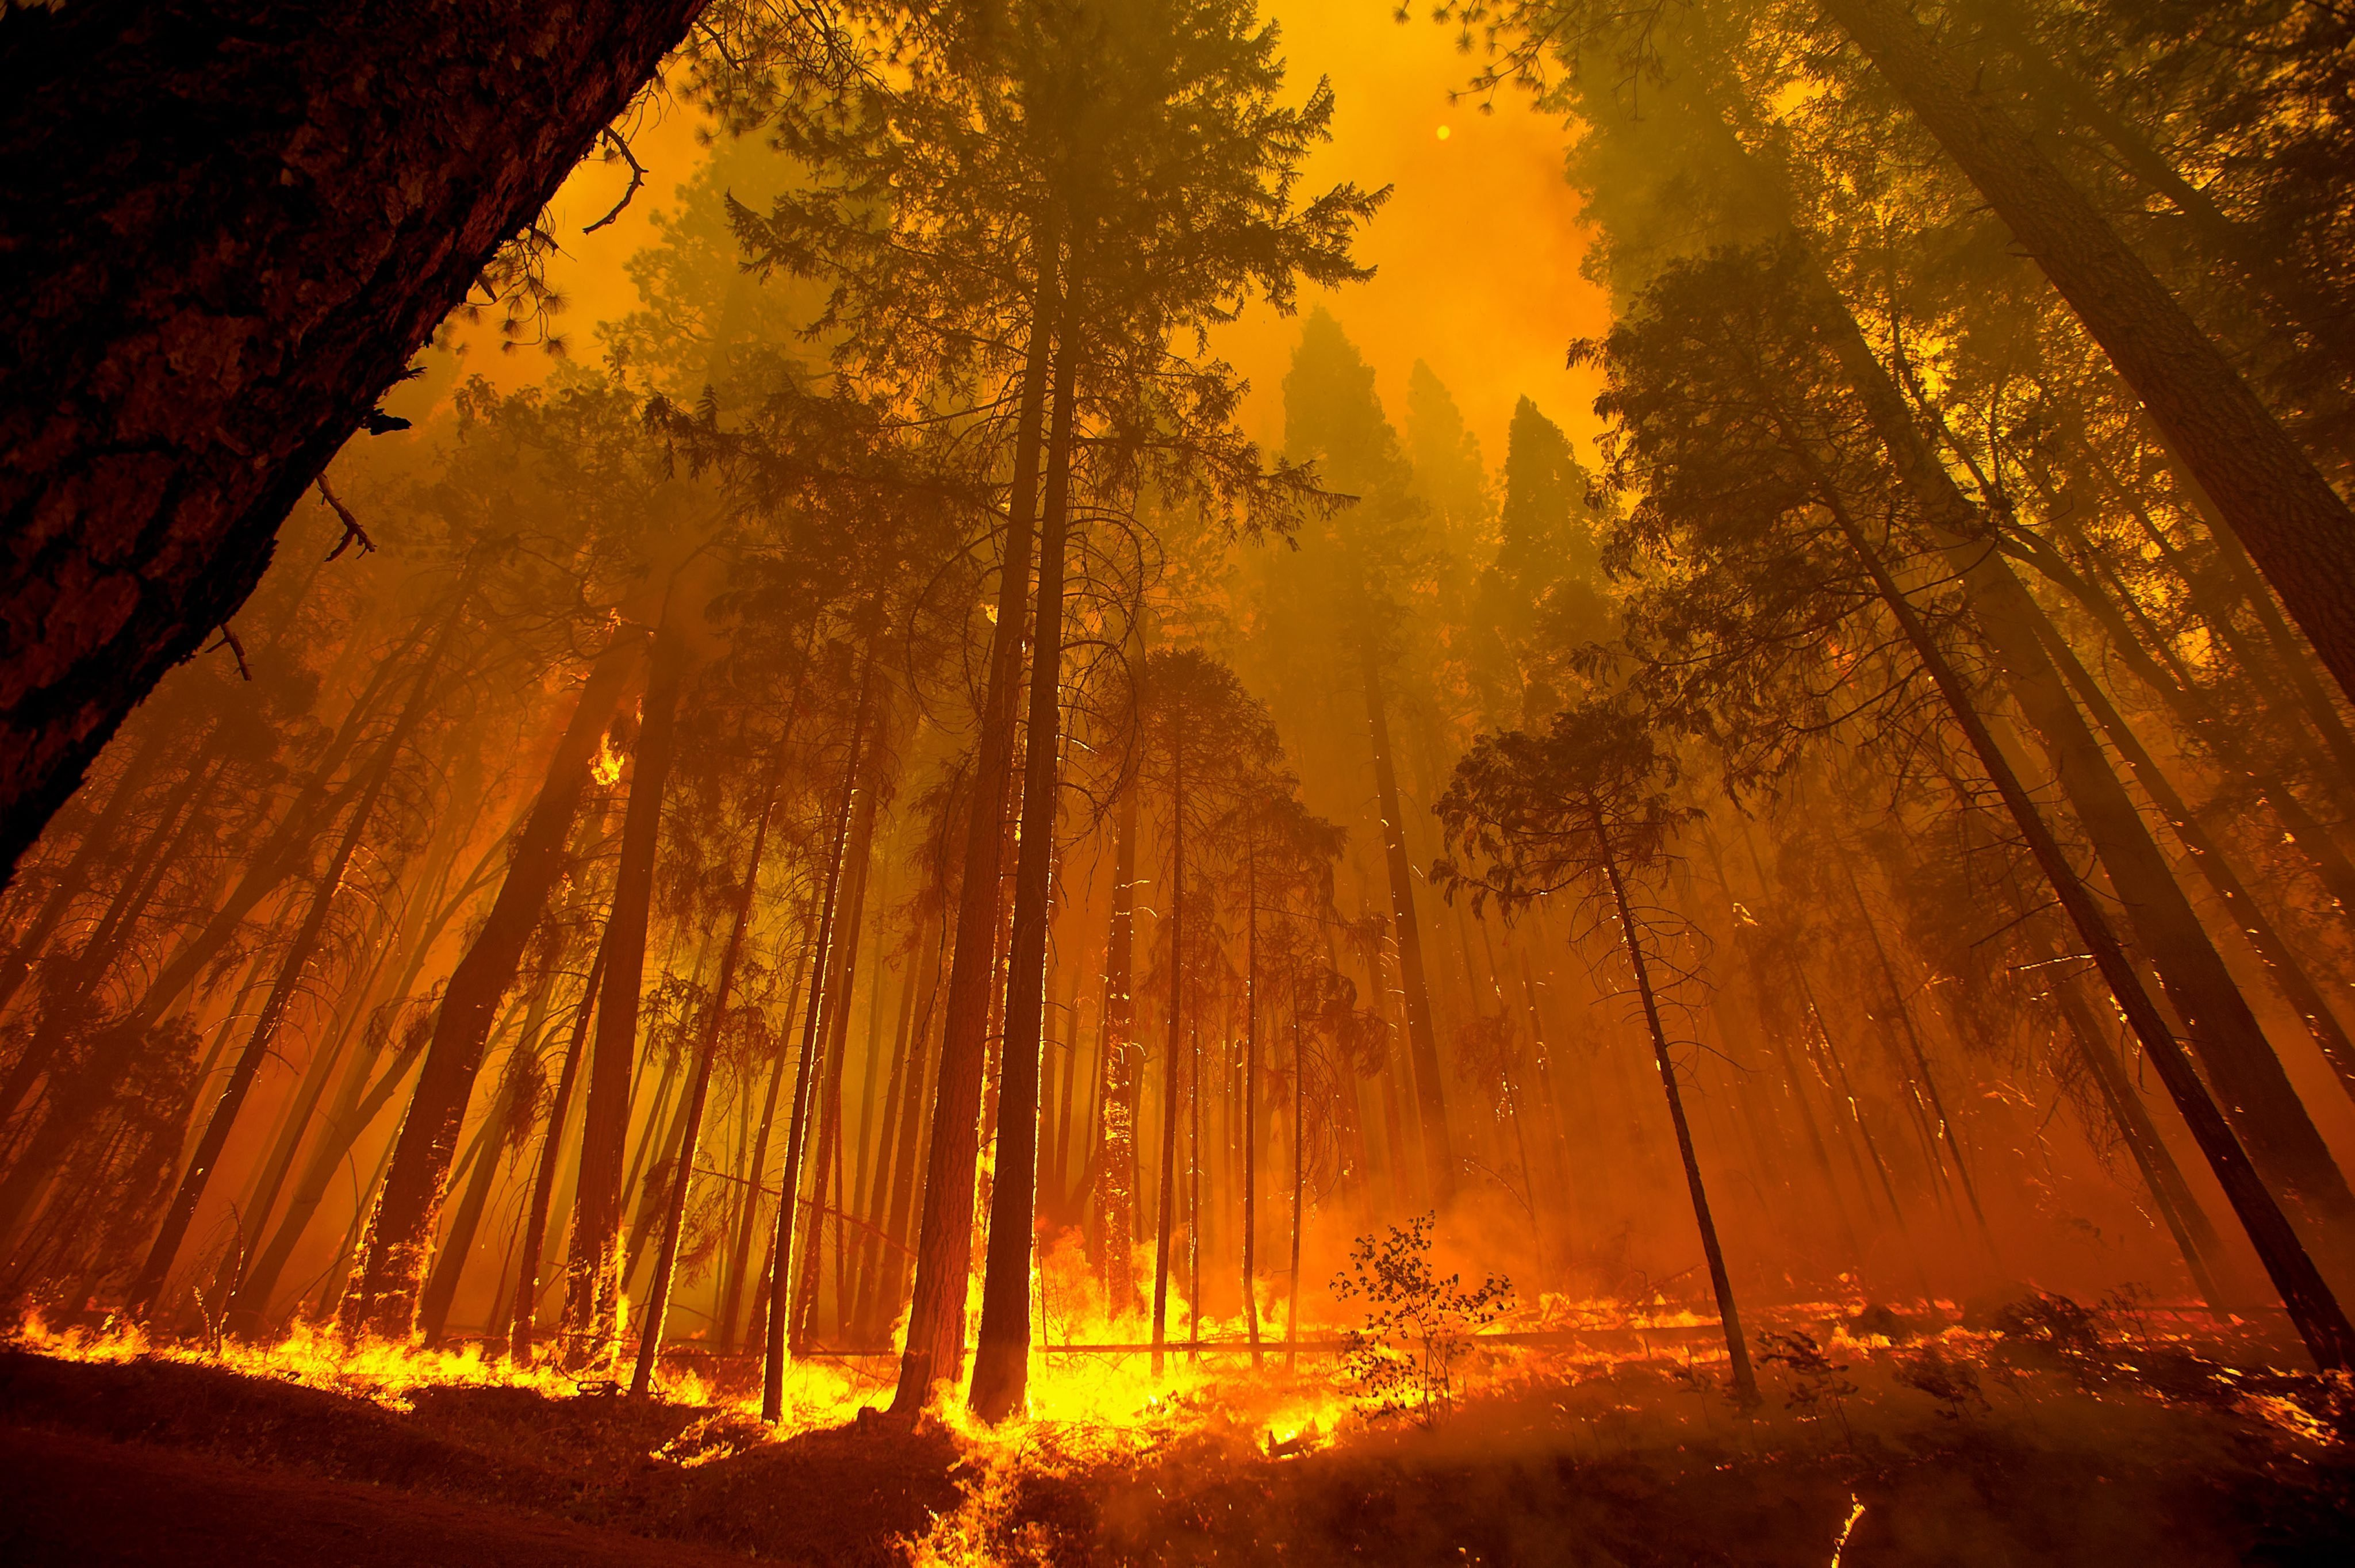 Hd Wallpaper Yosemite Fire Fall Forest Fire Flames Tree Disaster Apocalyptic 16